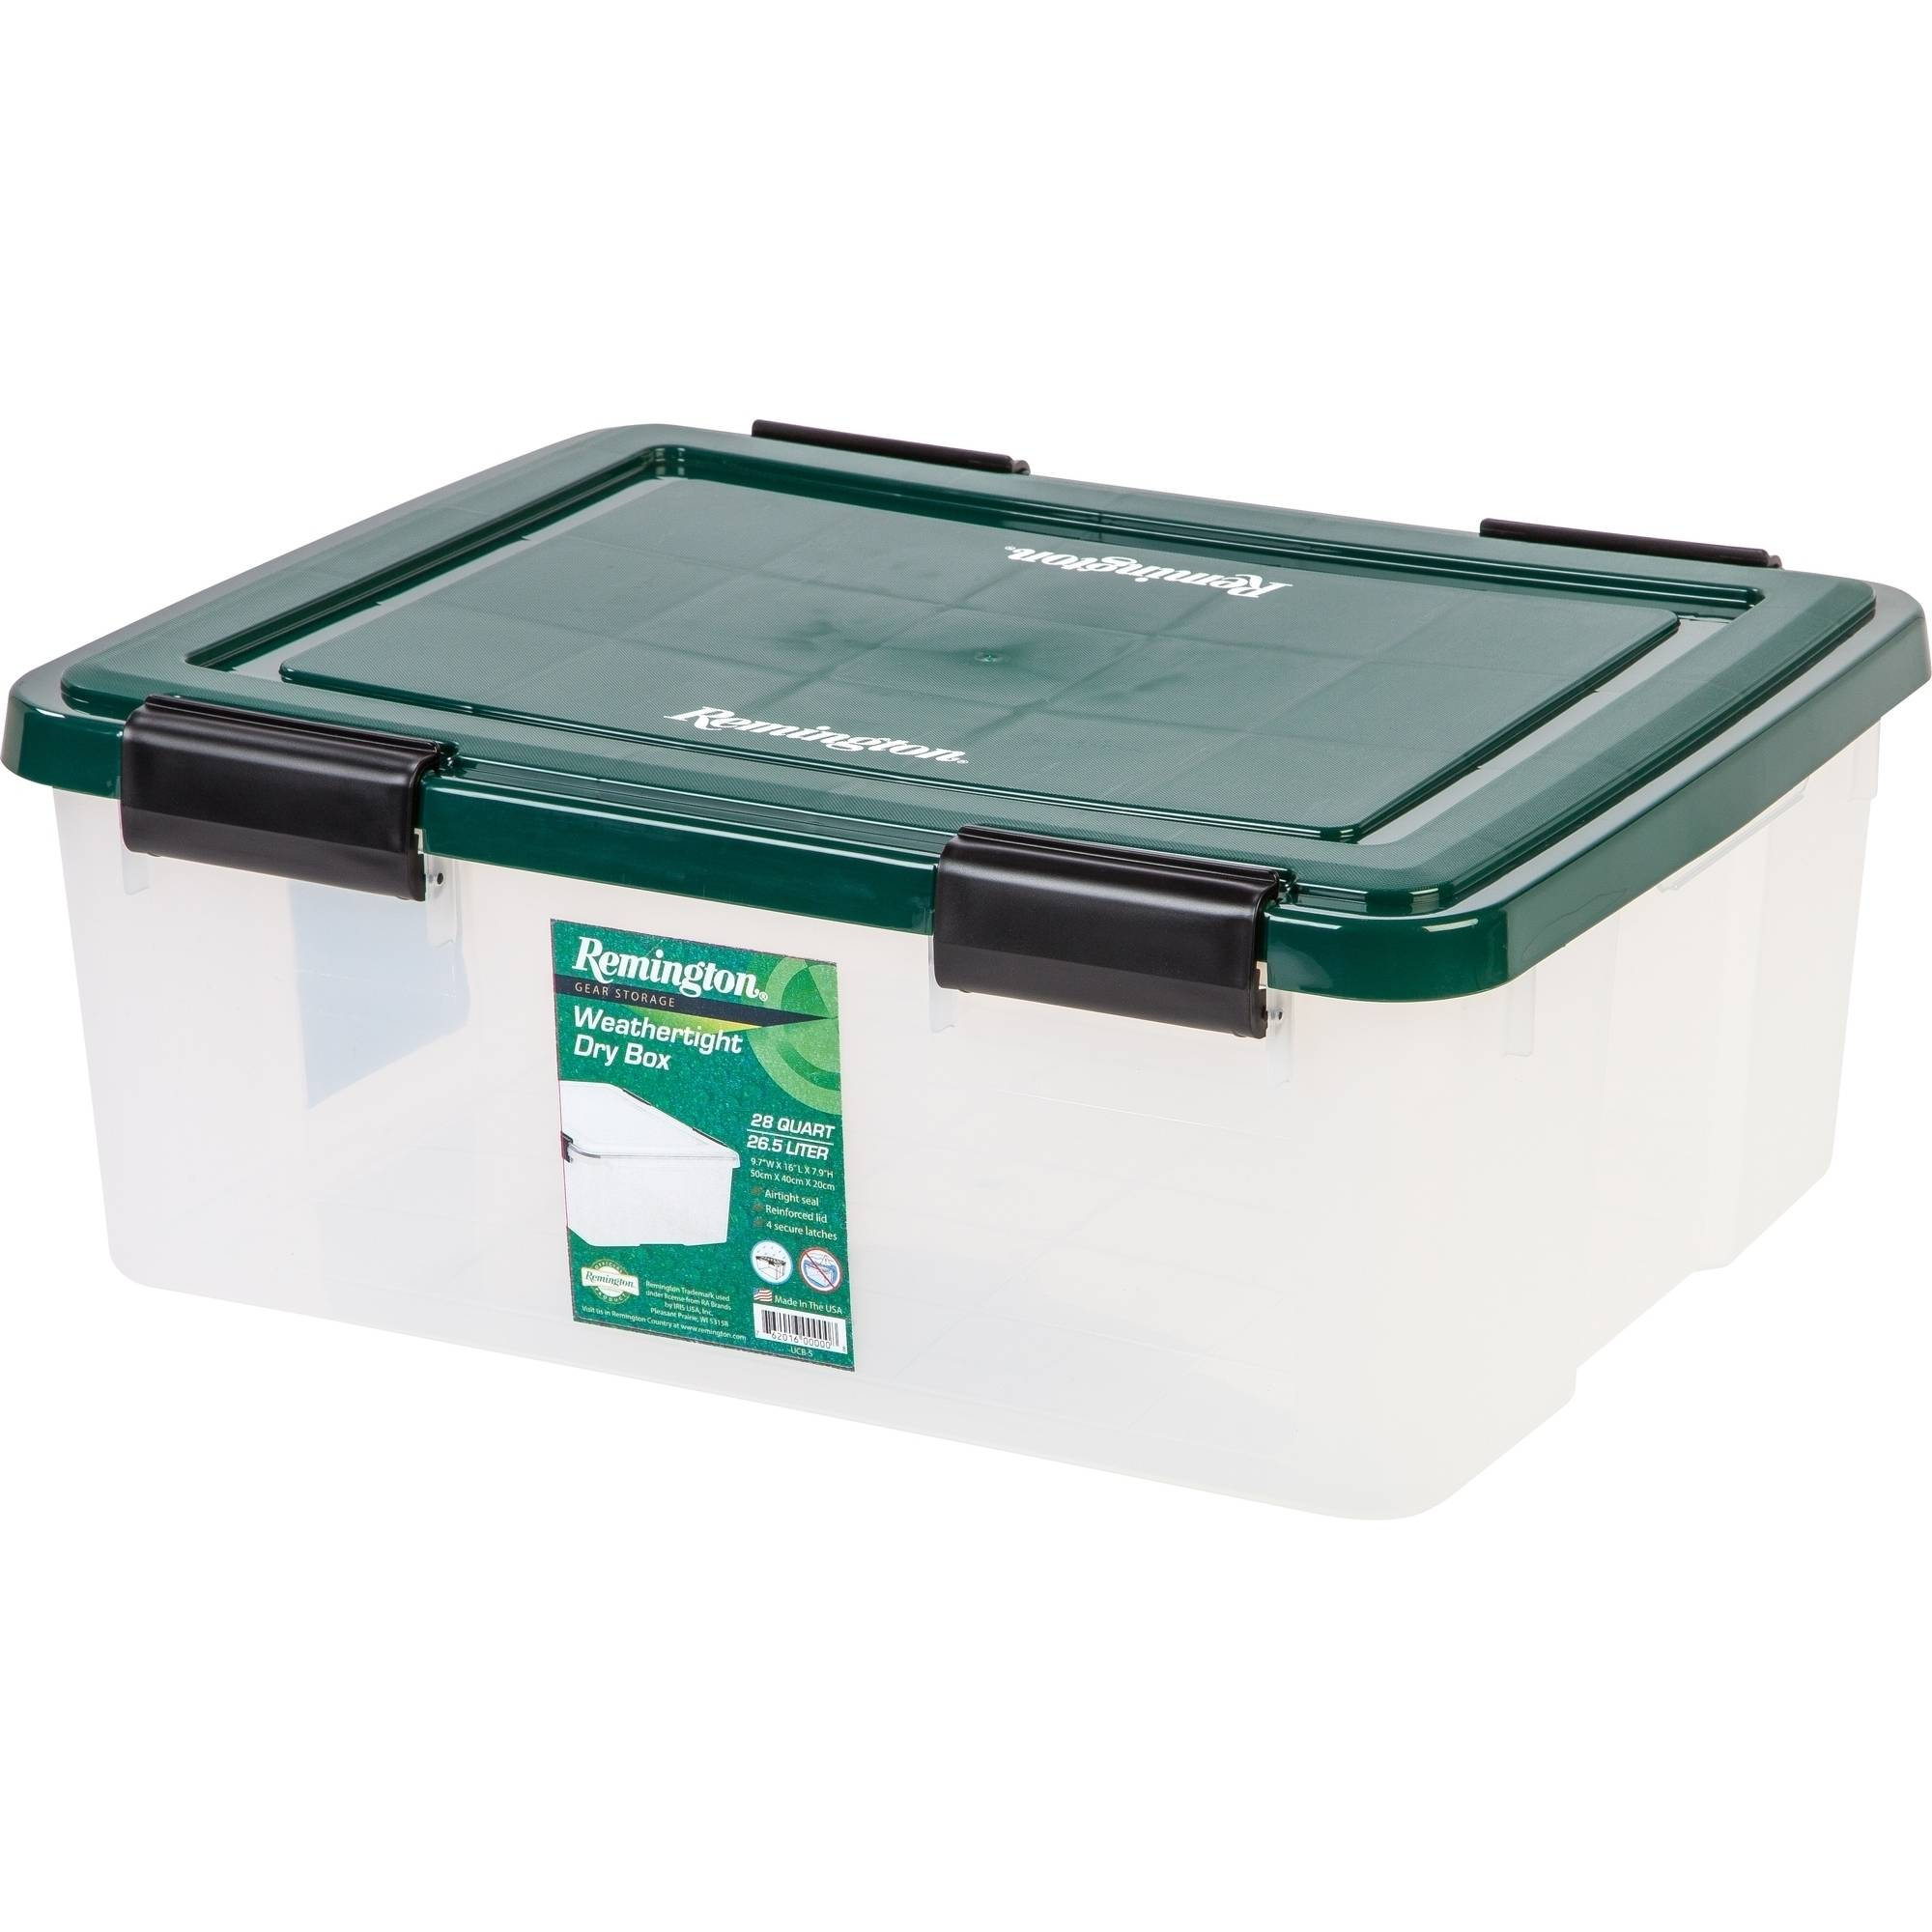 Remington 74 Qt. WEATHERTIGHT Storage Box, Green Set of 6